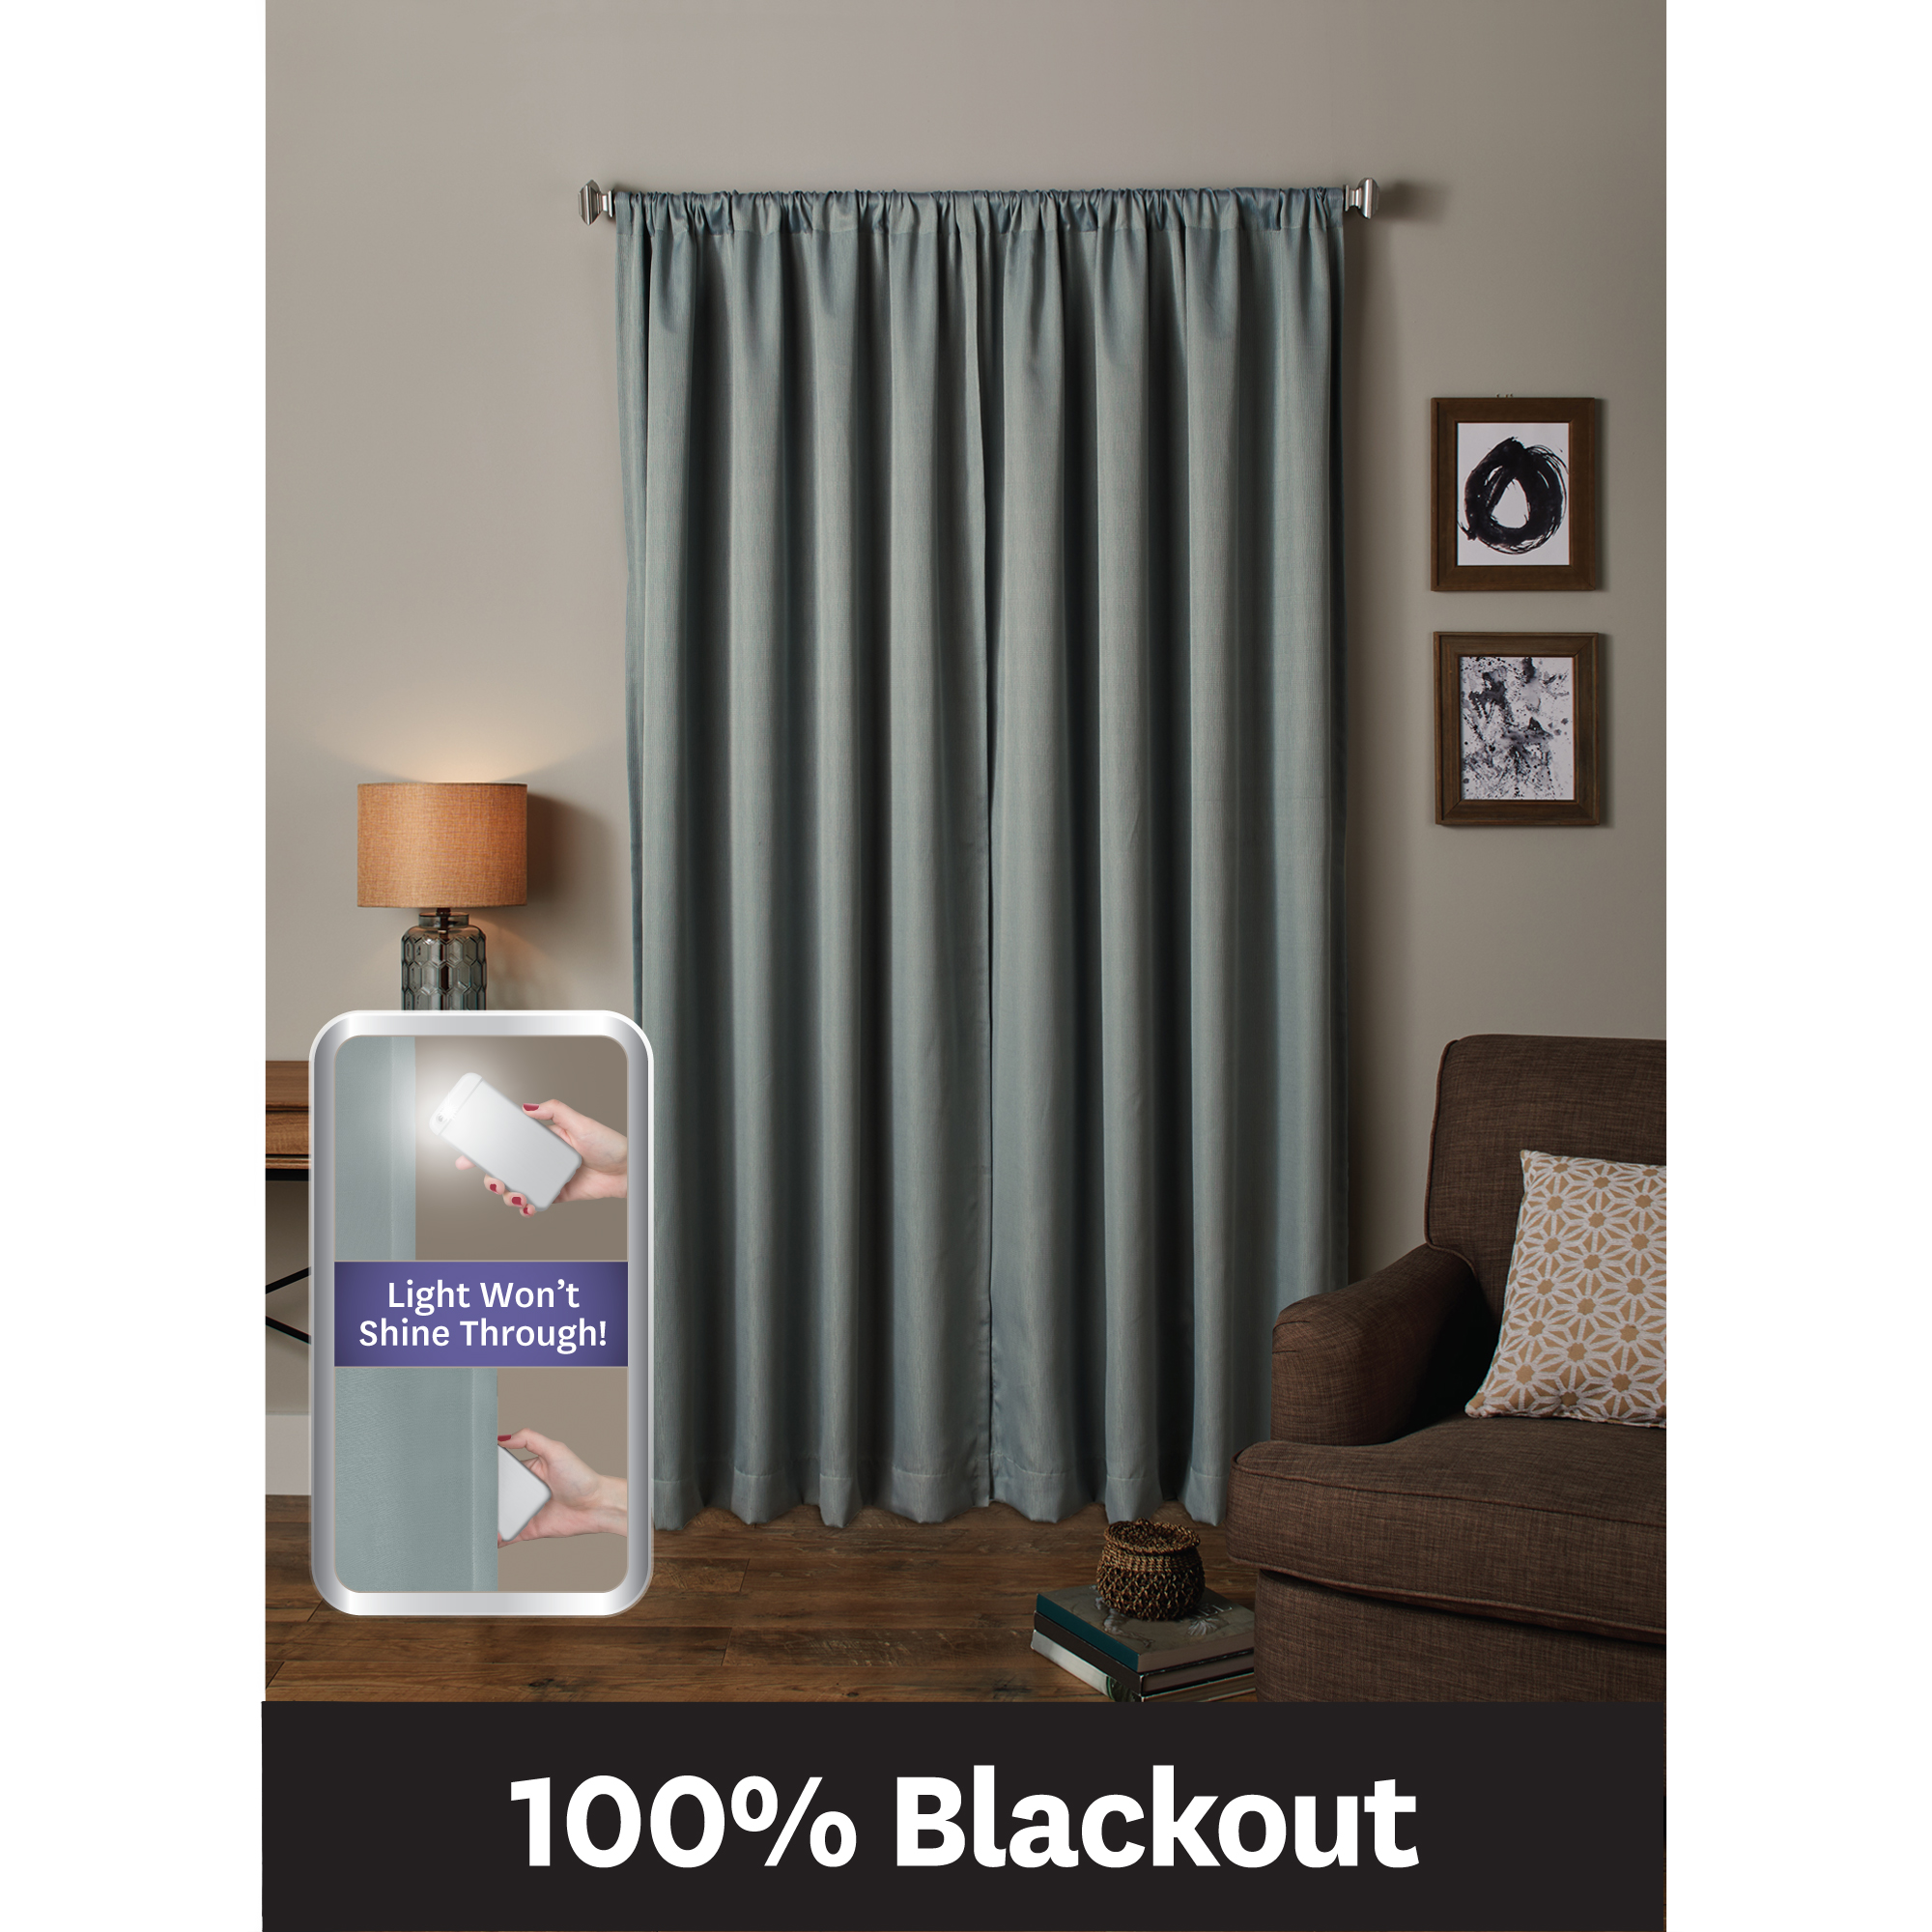 Better Homes & Gardens Ultimate Light Blocker 100 Percent Blackout